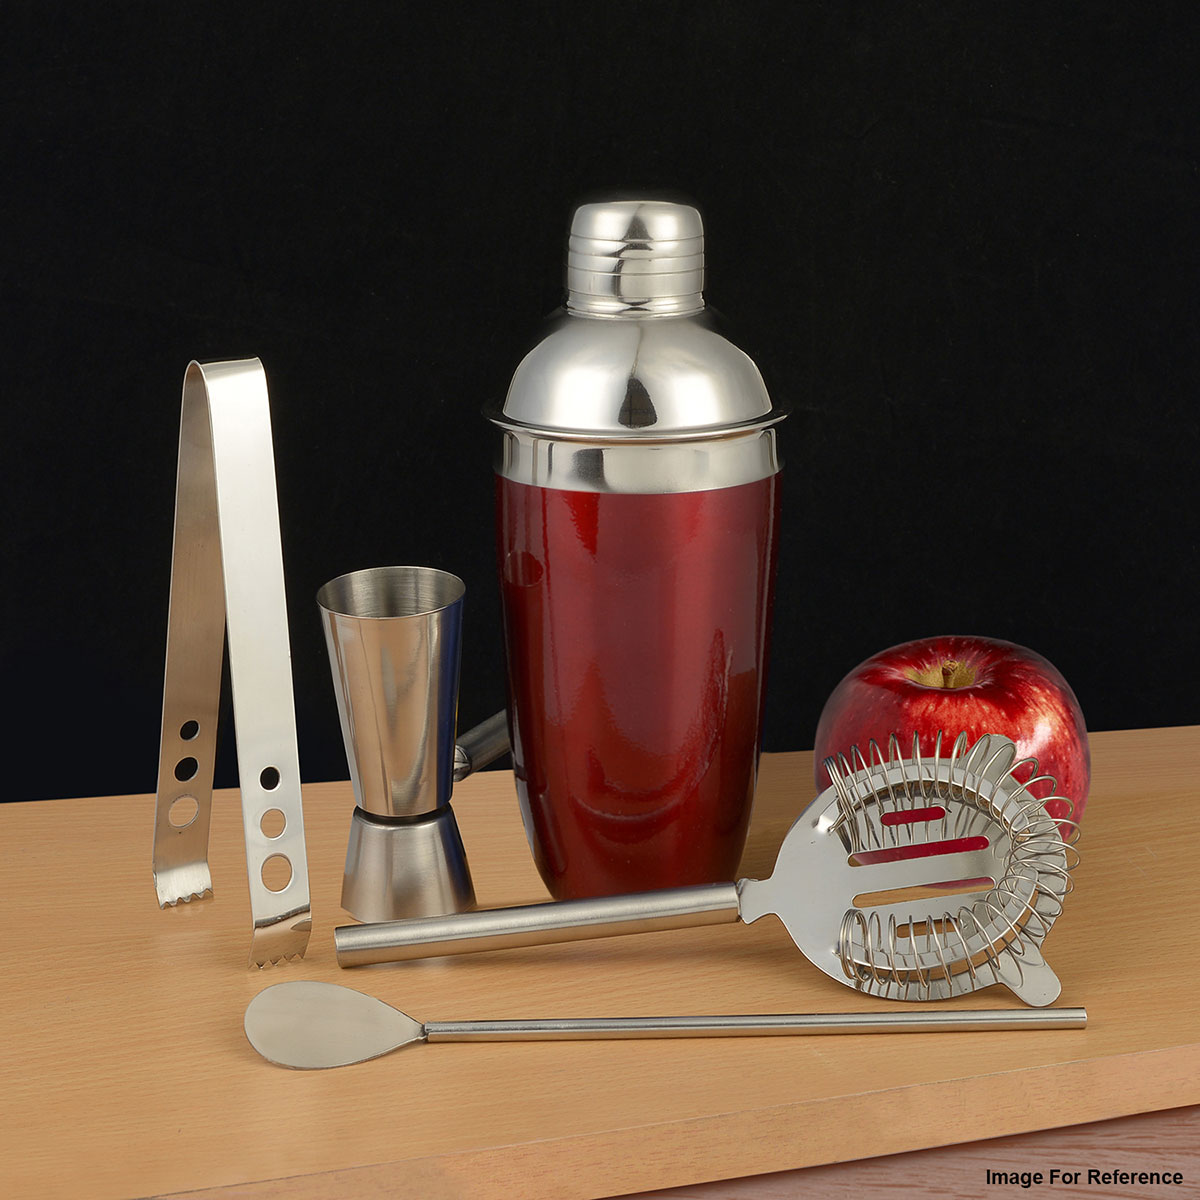 Red Stainless Steel Bar Set (Cocktail Shaker, Strainer Top, Jigger, Bar Spoon, Ice Tongs)